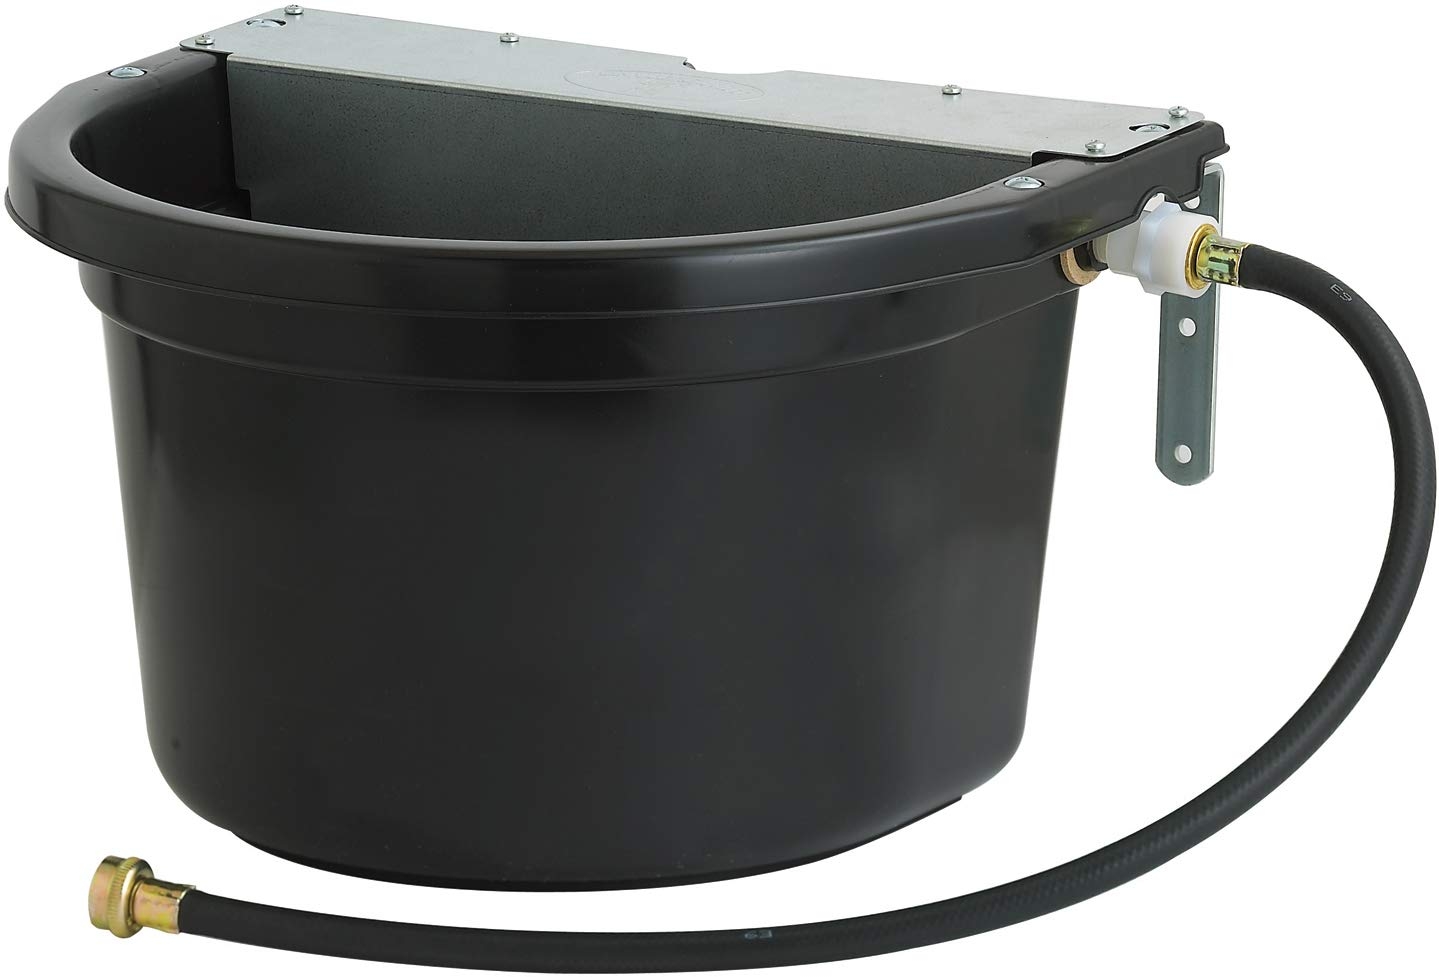 LITTLE GIANT Duramate Automatic Waterer with Metal Cover, Black